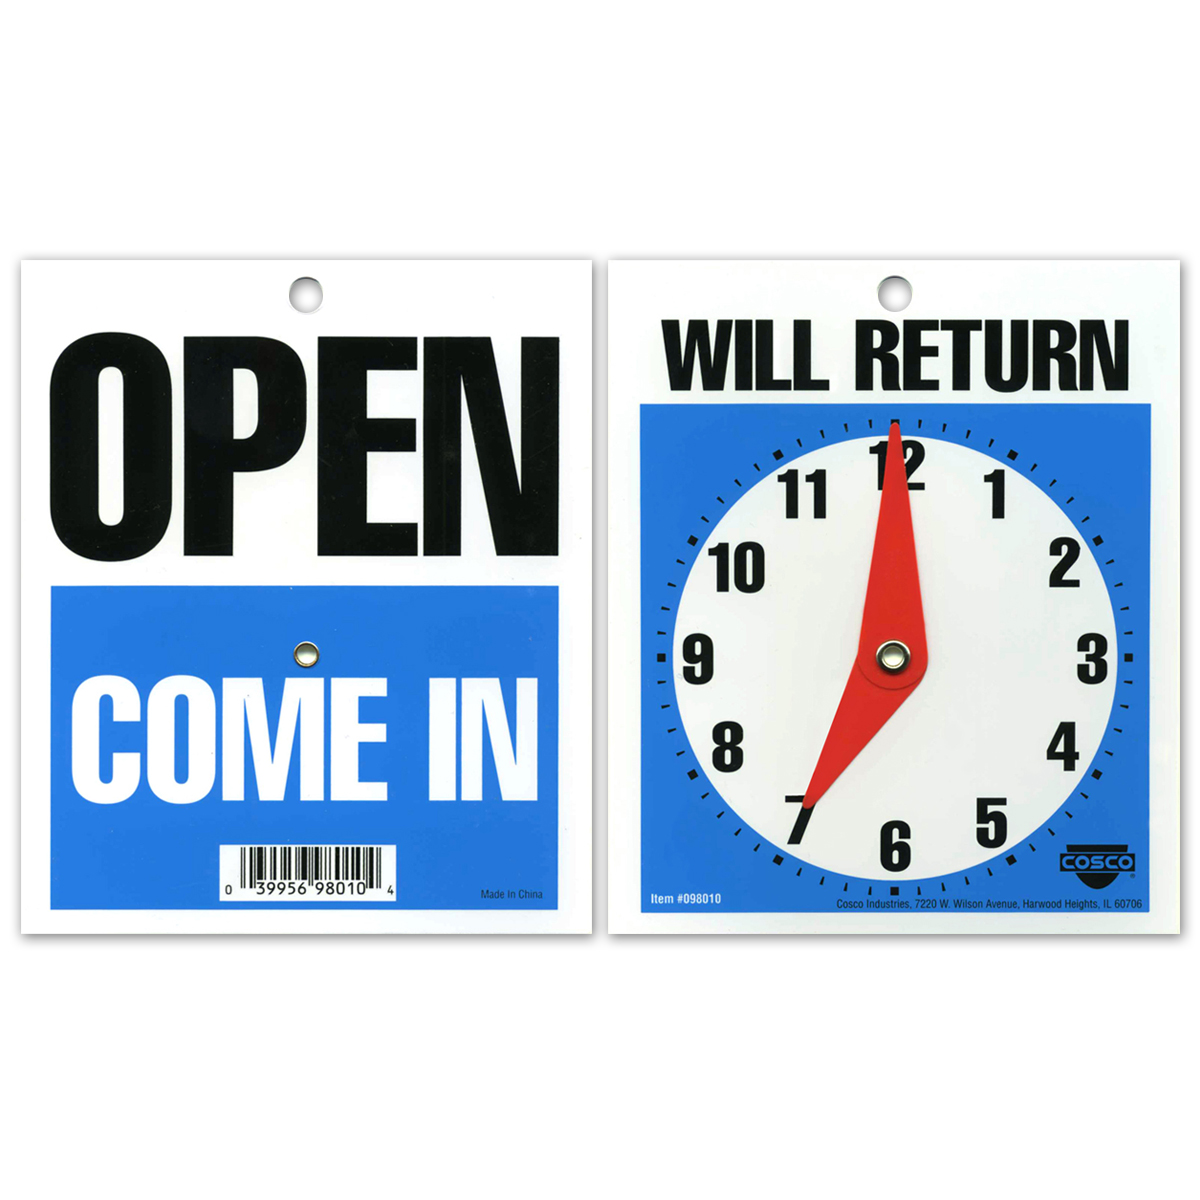 OPEN COME IN/WILL RETURN with Clock - 098010